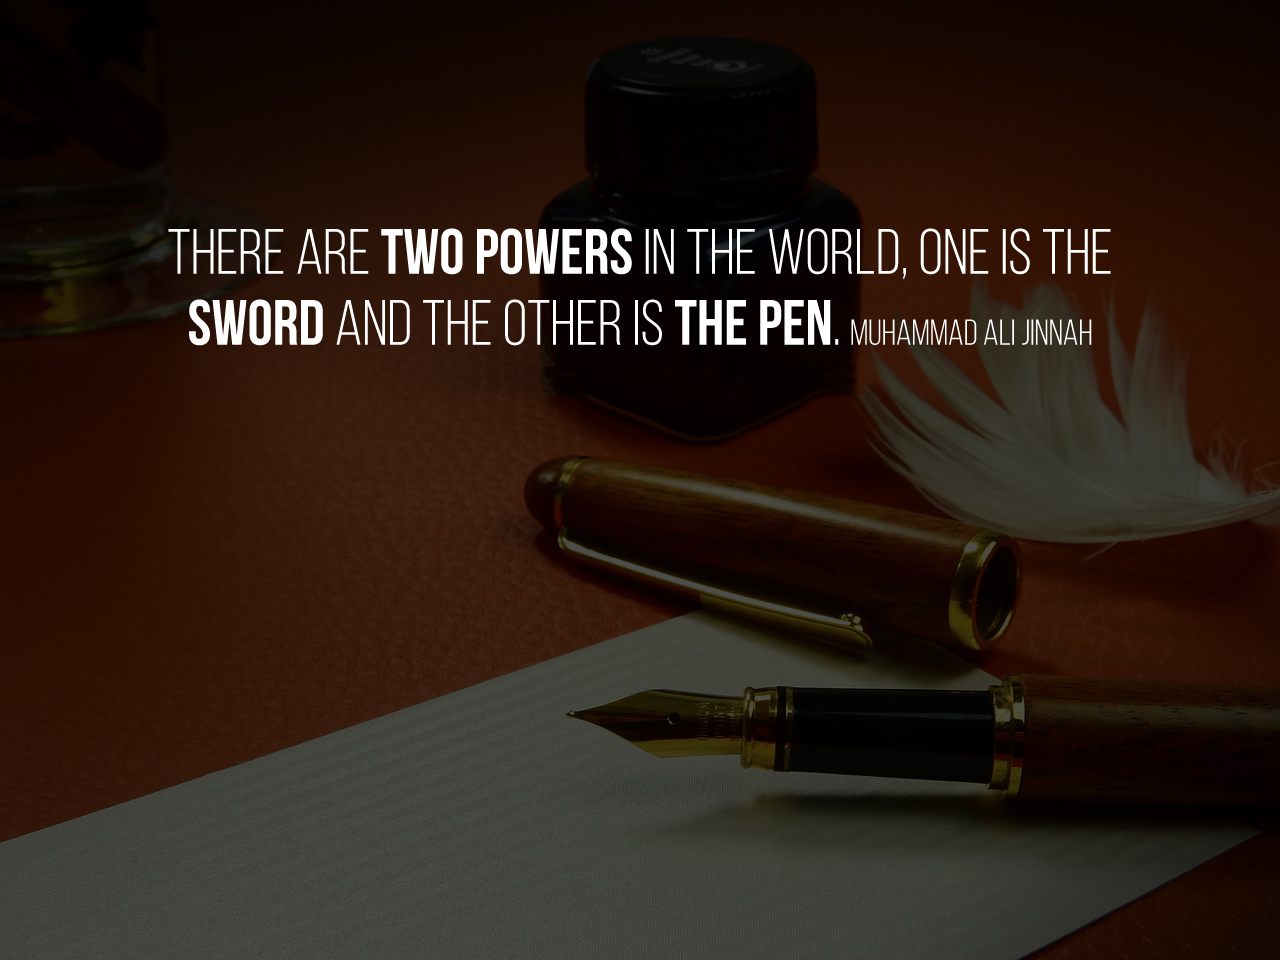 There are two powers in the world, one is the sword and the other is the pen. Muhammad Ali Jinnah